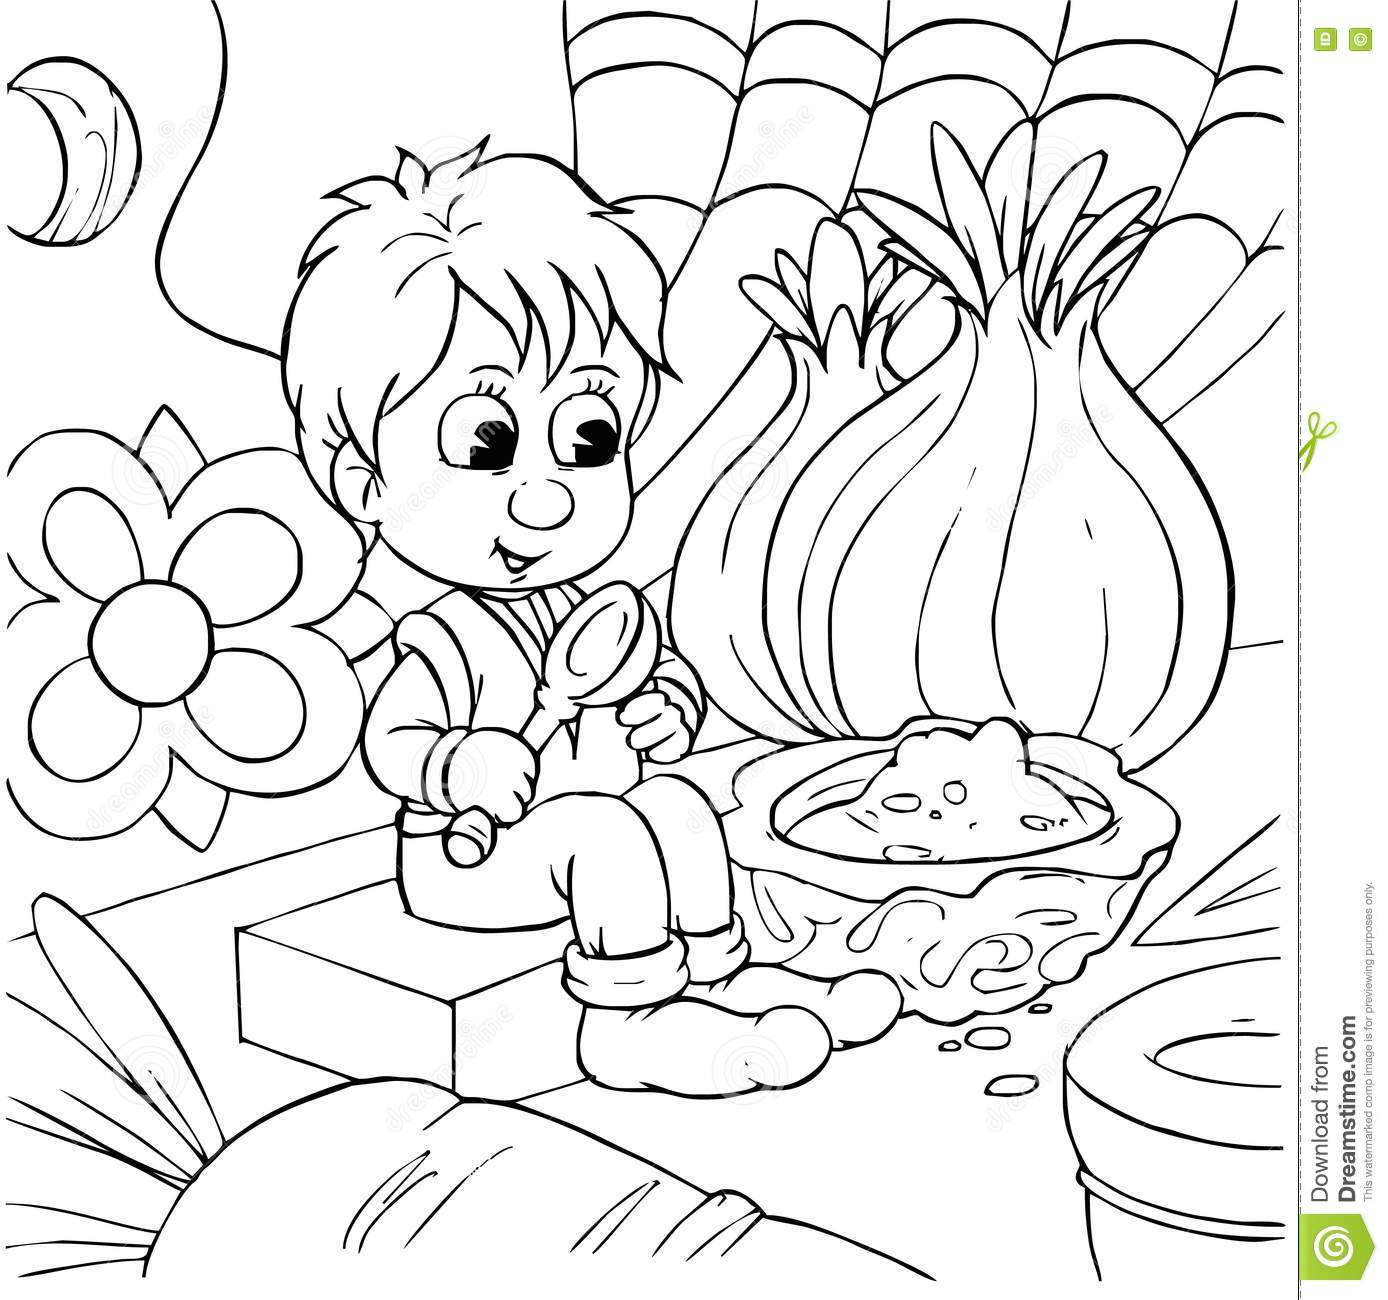 tom thumb coloring pages - photo#18